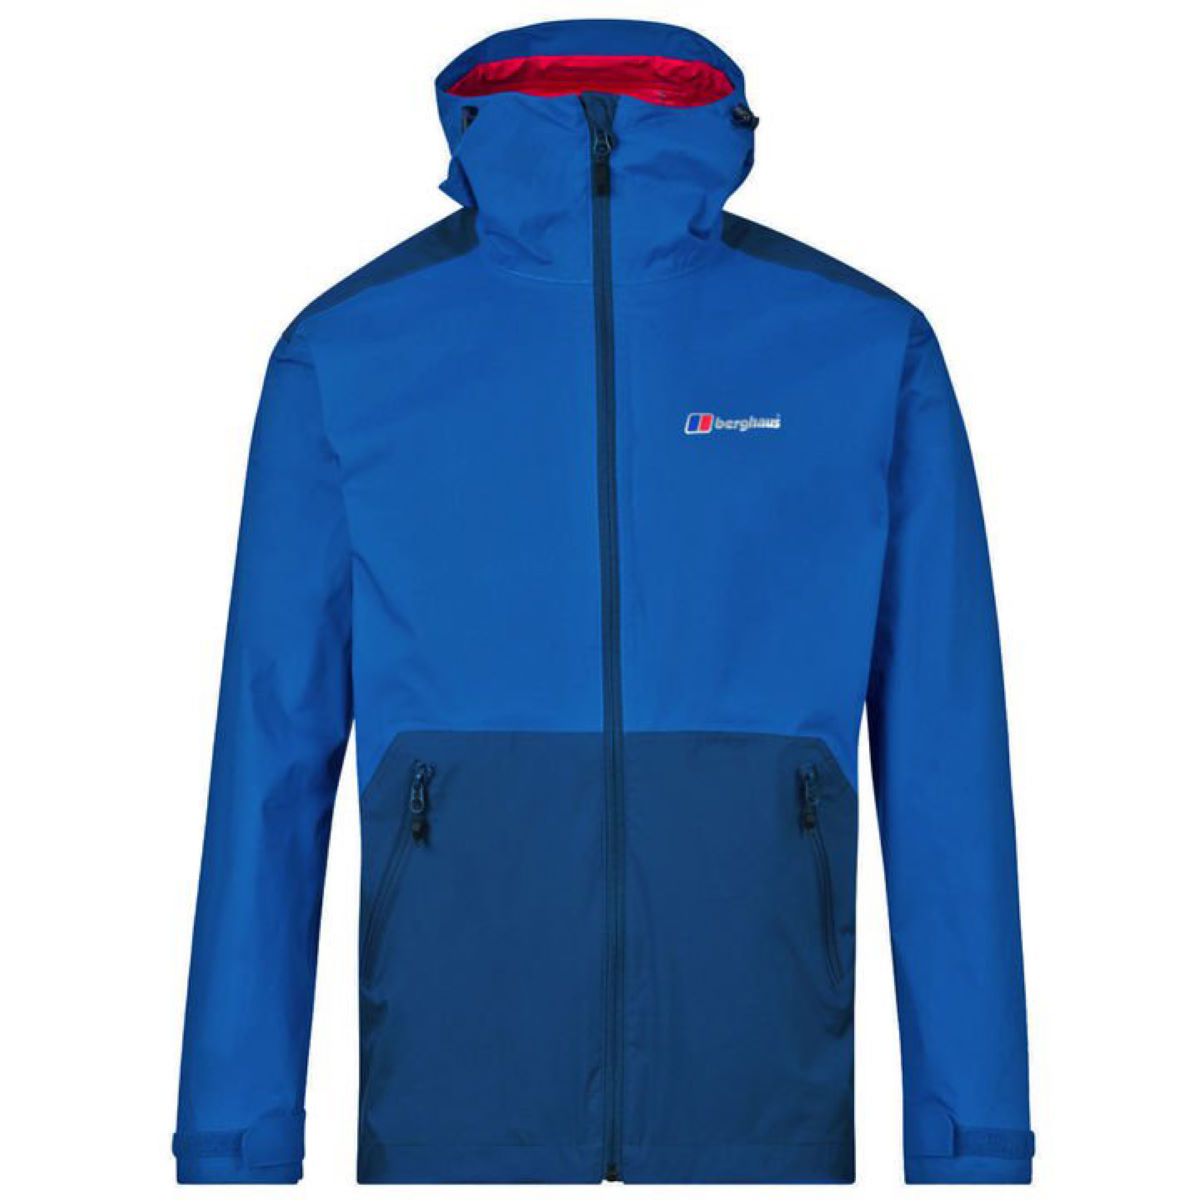 Berghaus Deluge Pro Shell Jacket - Chaquetas